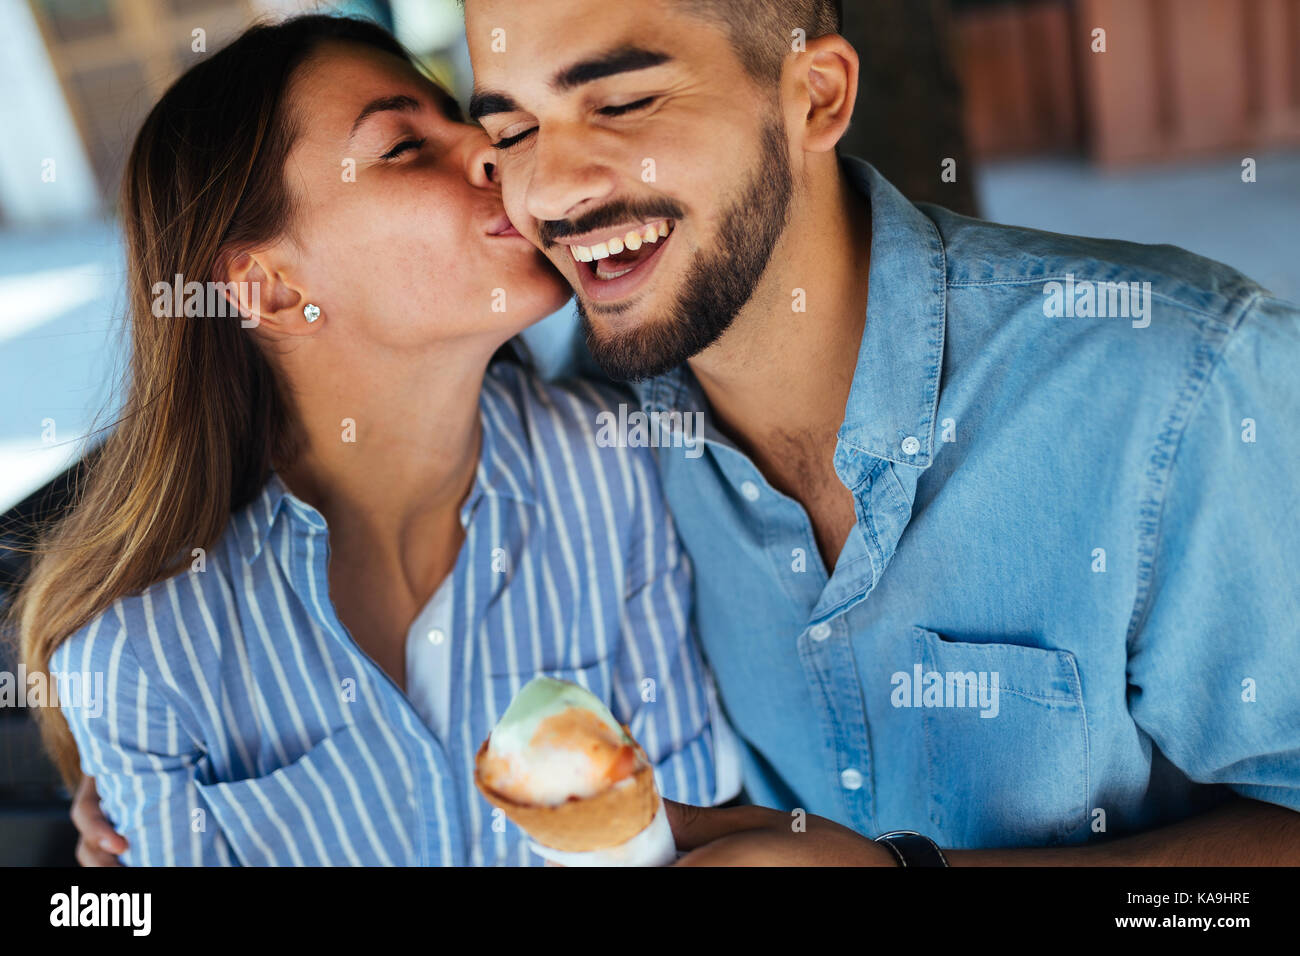 Happy couple having date and eating ice cream - Stock Image